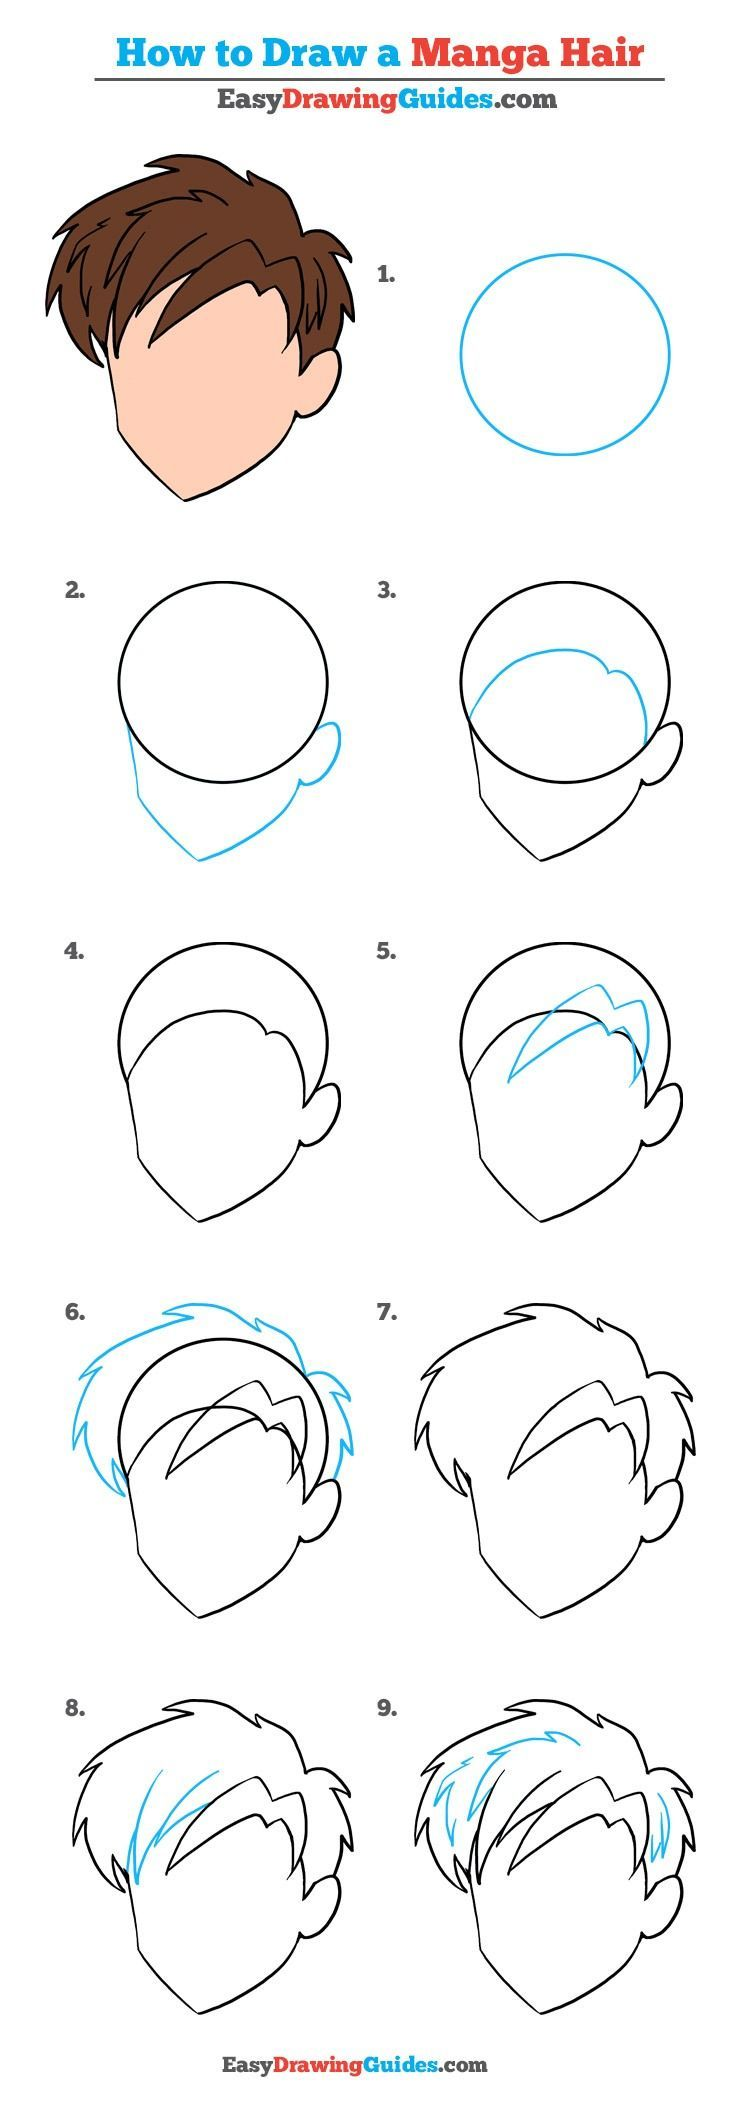 How To Draw Manga Hair In A Few Easy Steps